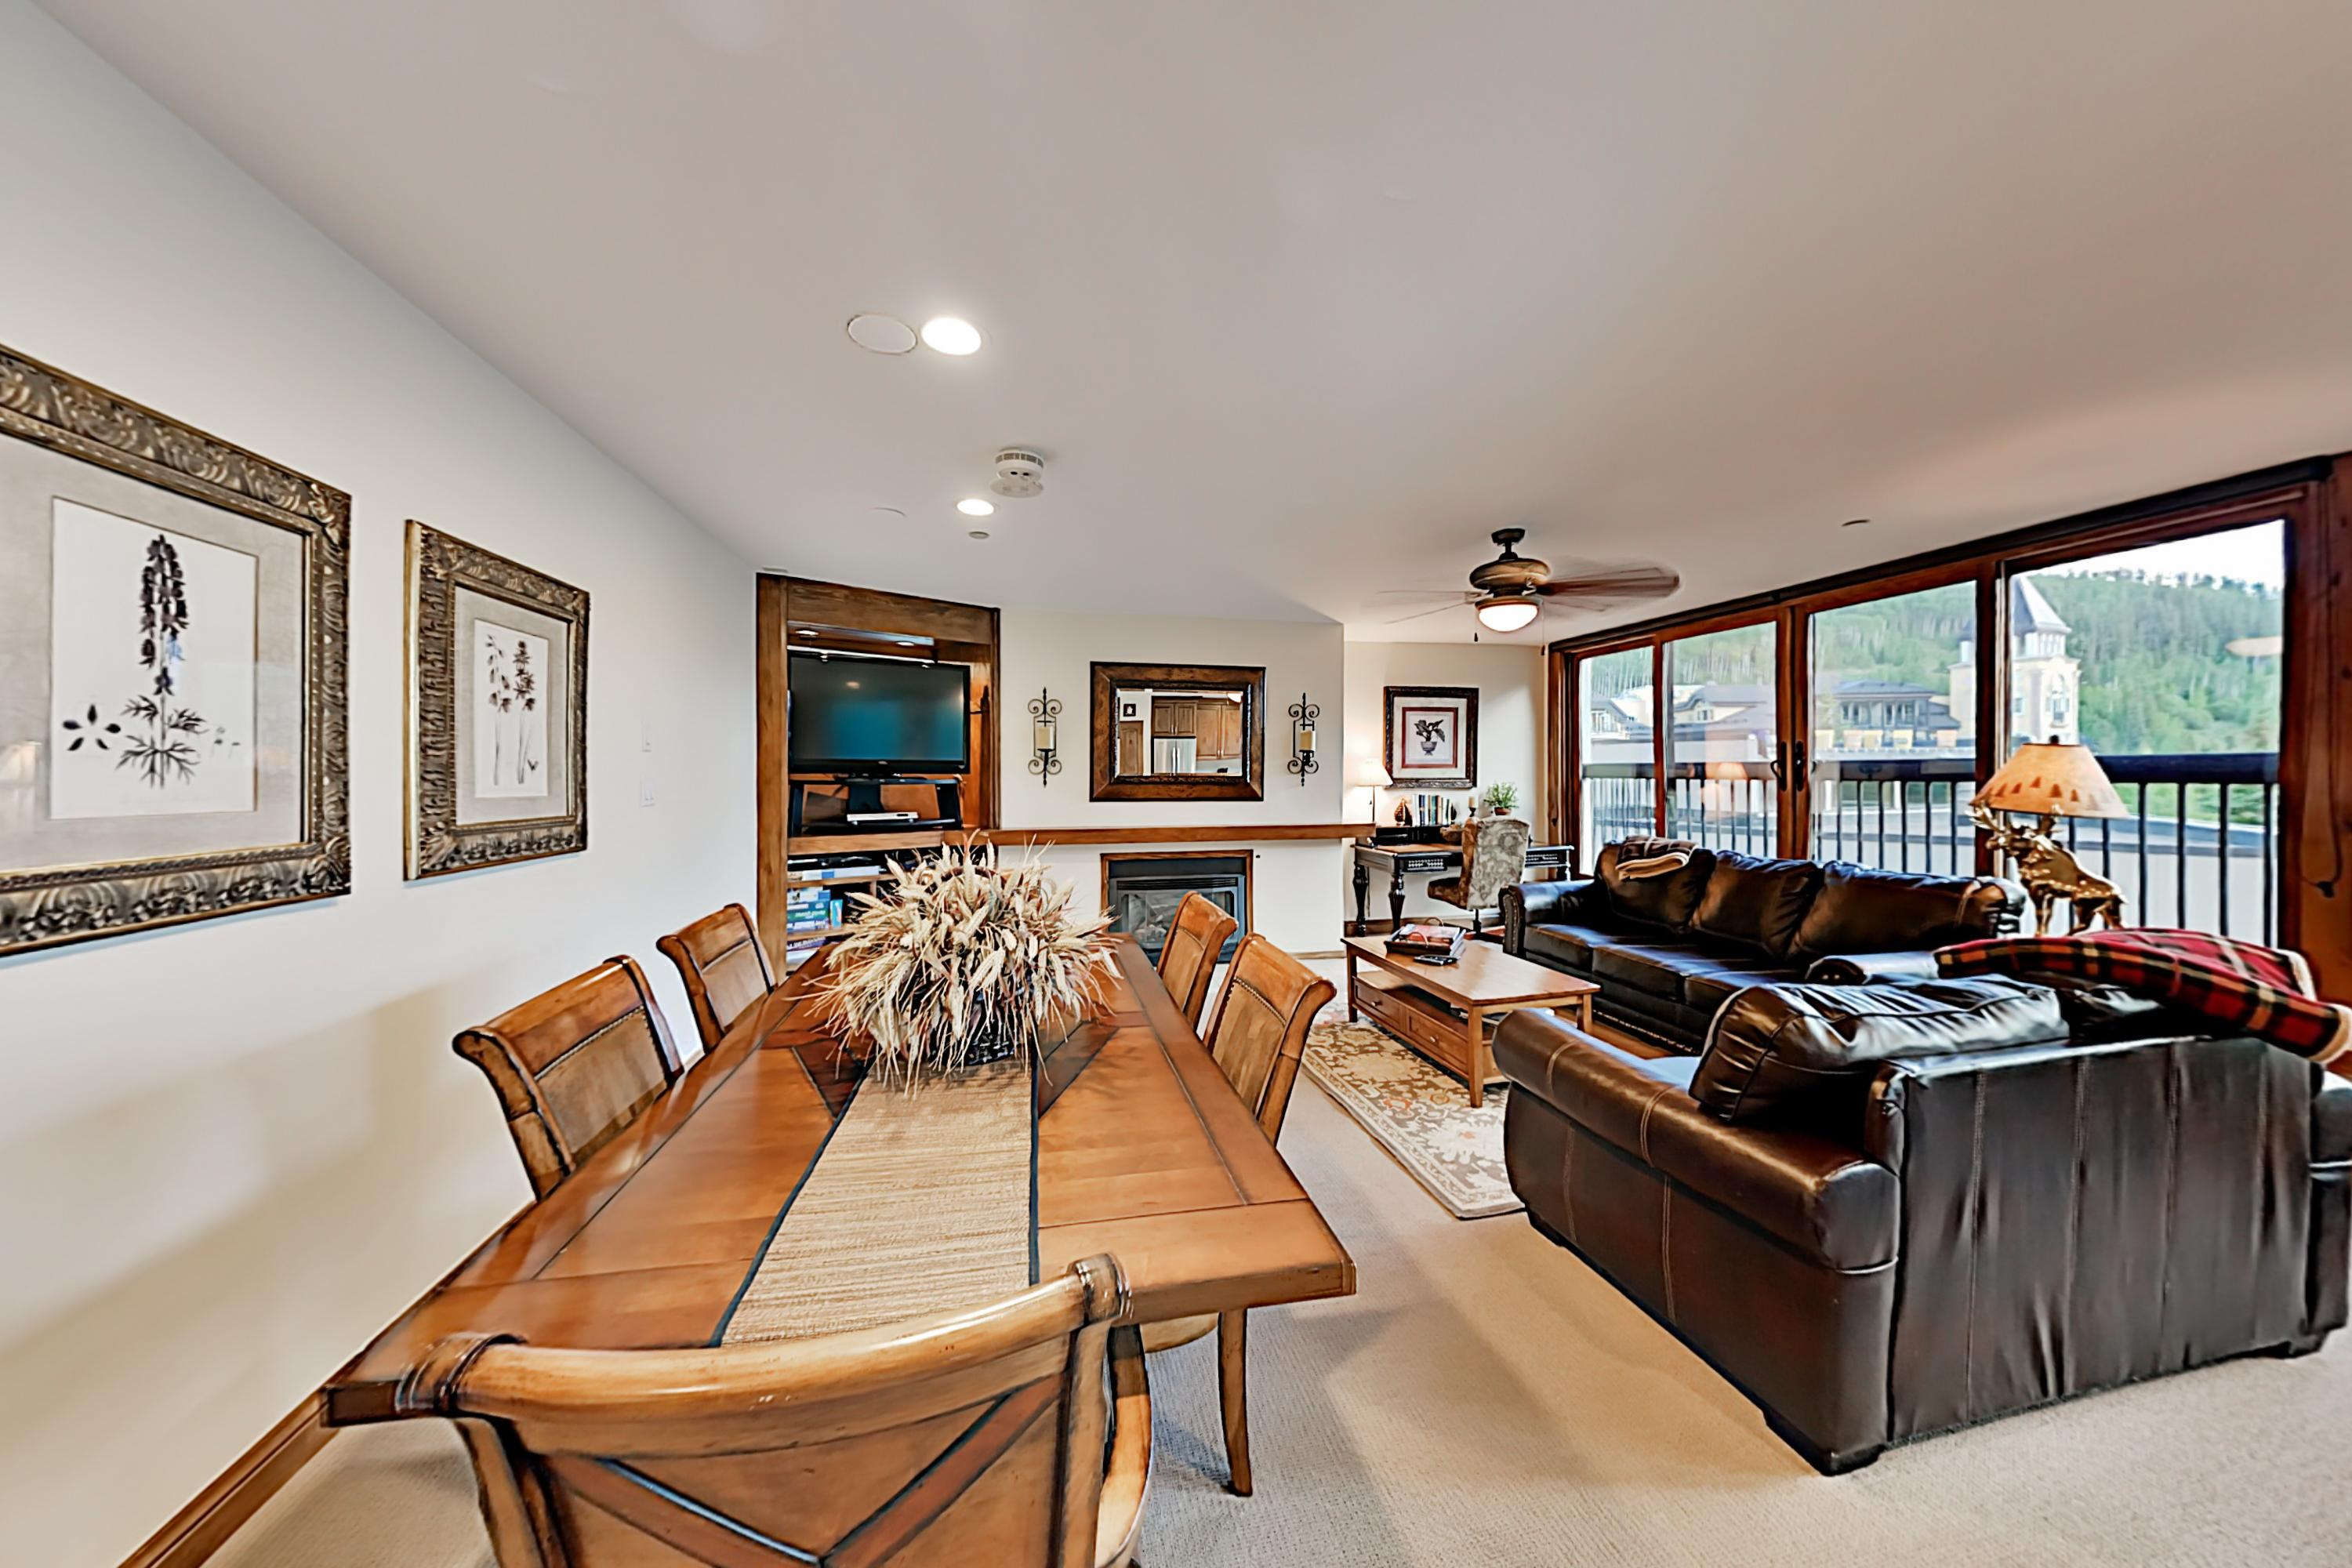 Vail Spa Condo with Expansive Views & Pool, Near Ski Lifts